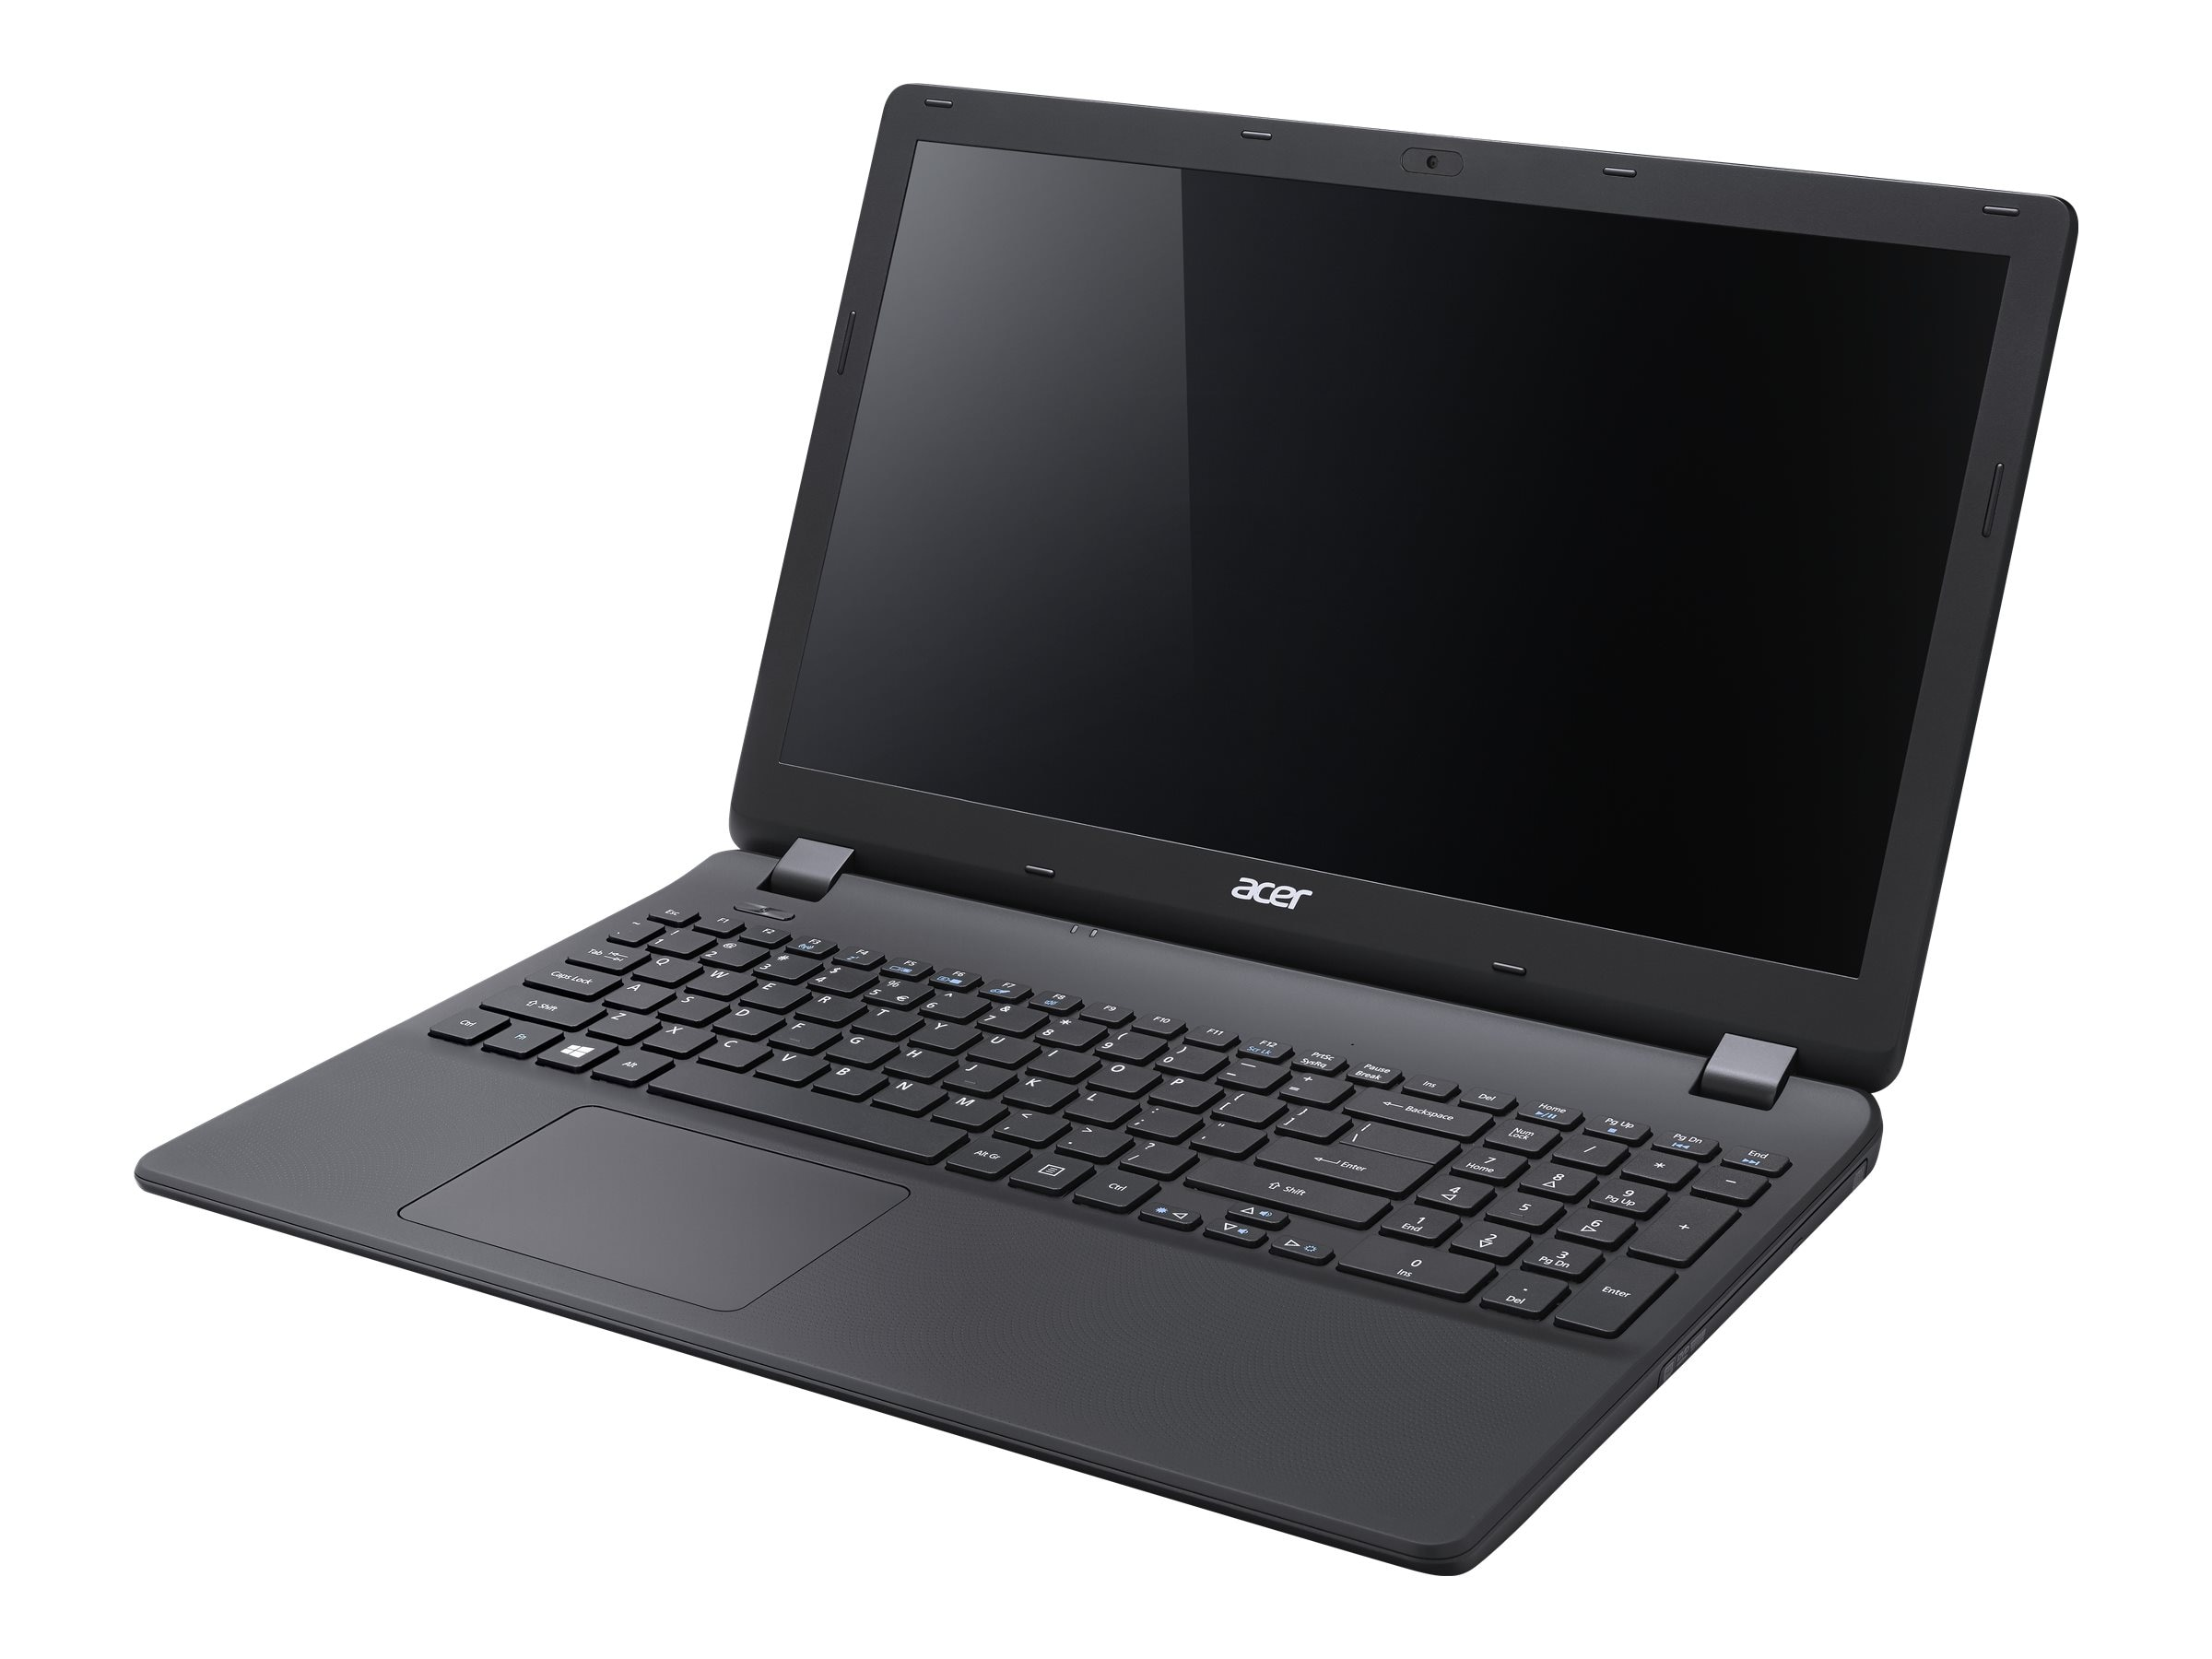 Acer NX.GCEAA.004 Image 1